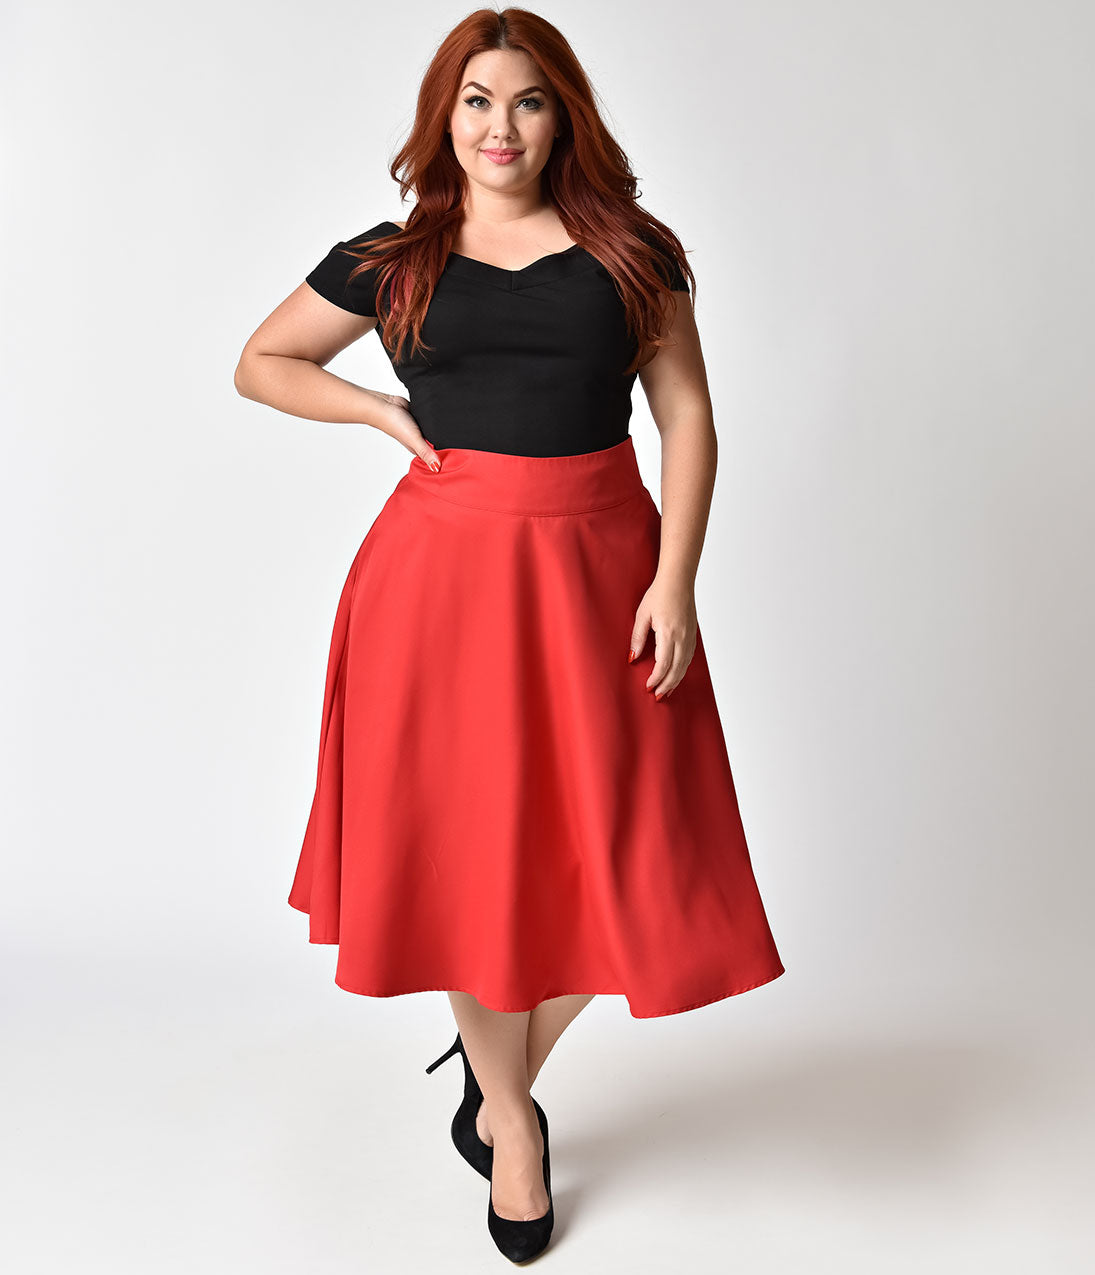 Retro Skirts: Vintage, Pencil, Circle, & Plus Sizes Unique Vintage Plus Size Retro Style Apple Red High Waist Vivien Swing Skirt $39.00 AT vintagedancer.com